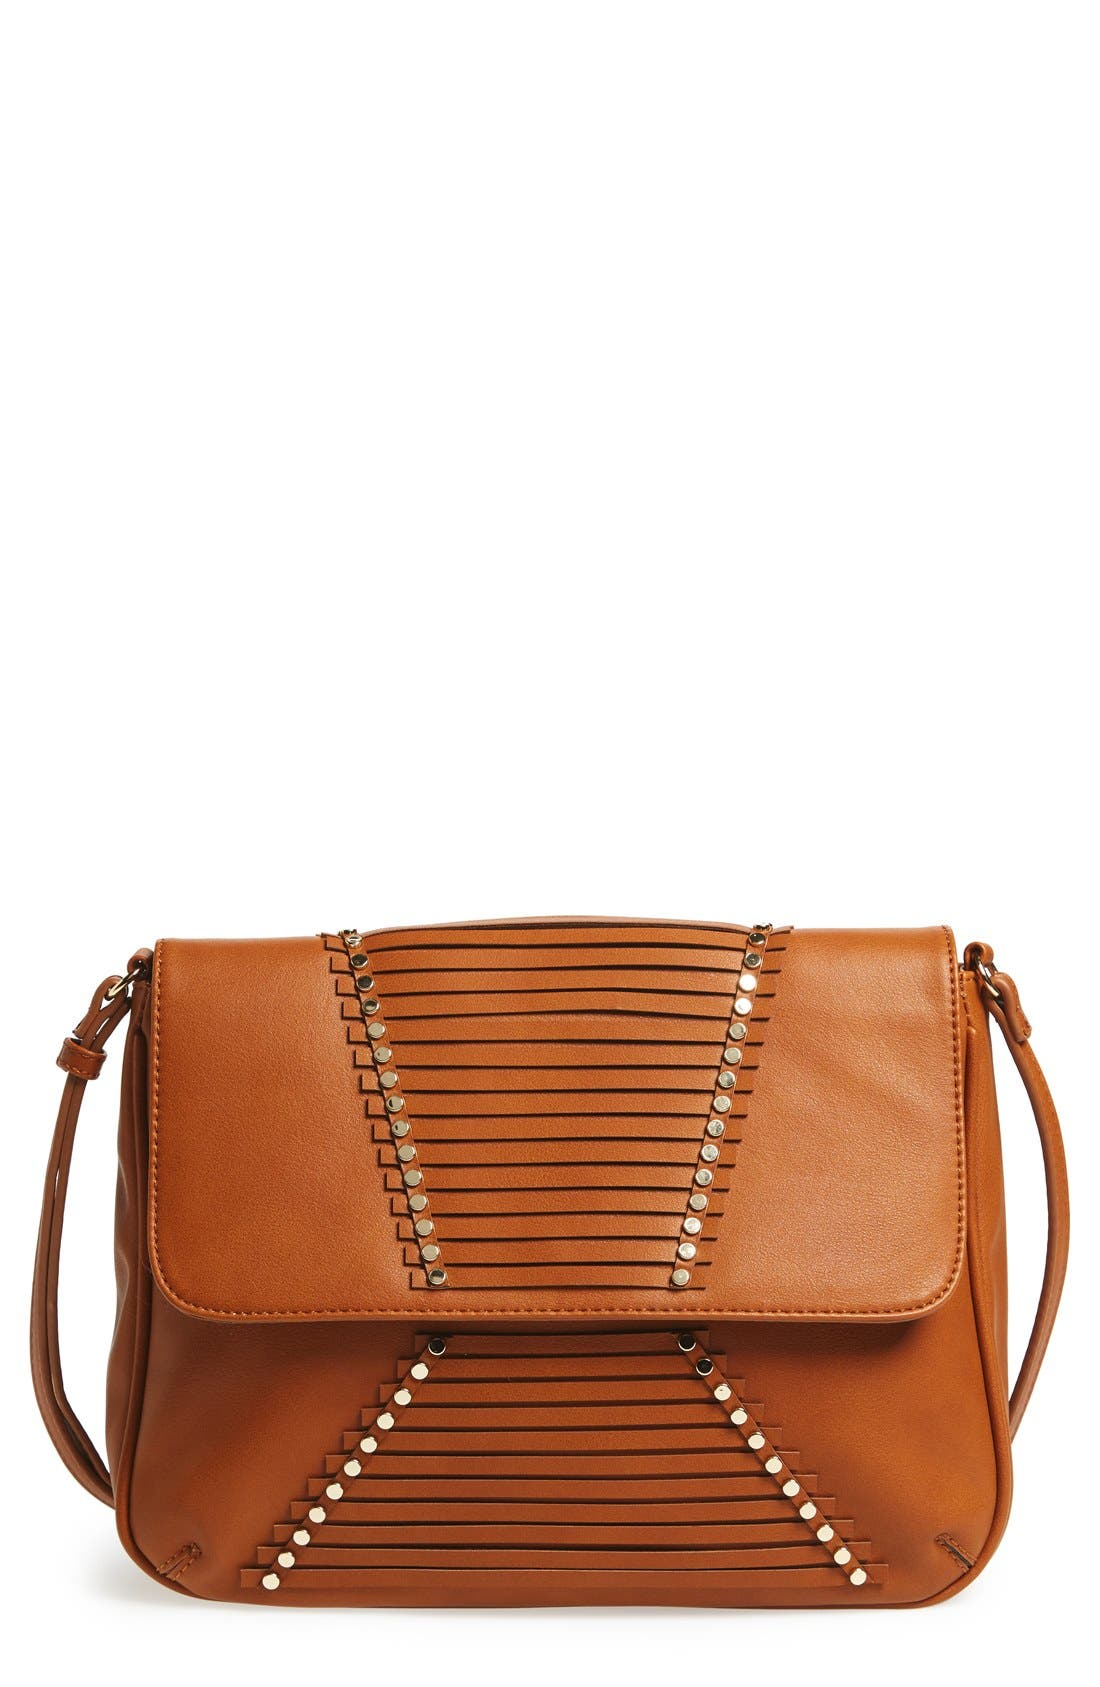 Alternate Image 1 Selected - Emperia 'Larissa' Studded Flap Faux Leather Crossbody Bag